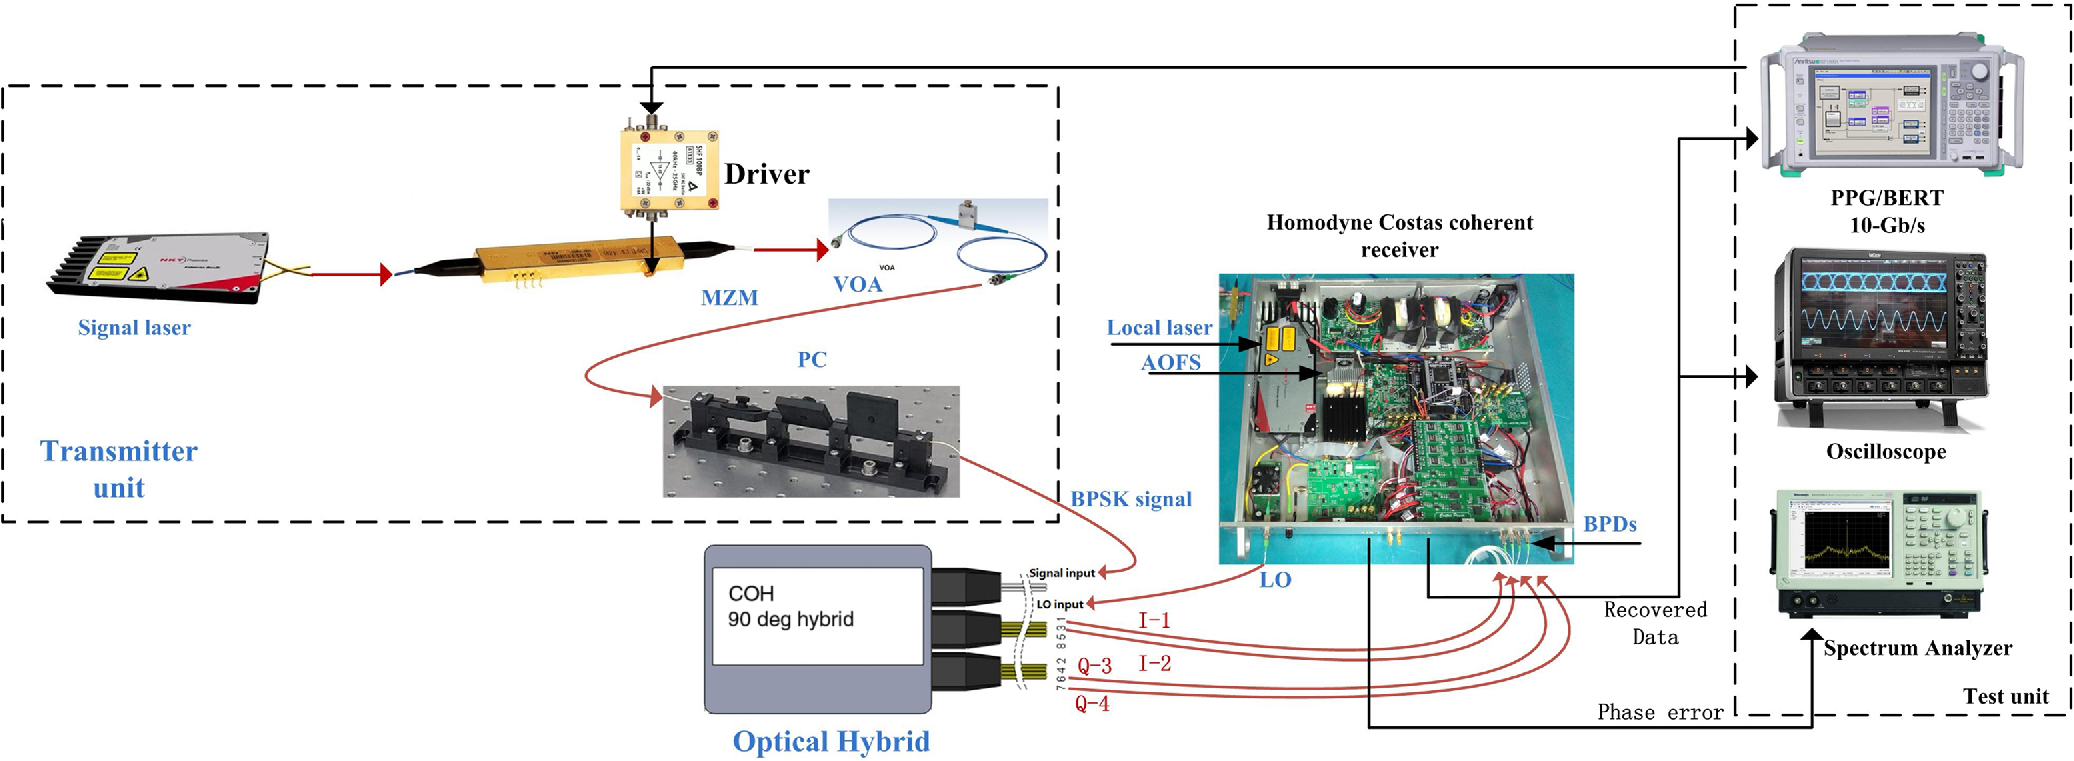 Investigation Of Signal Power Splitting Ratio For Bpsk Homodyne Figs 1and 2 Shows Transmitter And Receiver Circuit Respectivelythe Fig